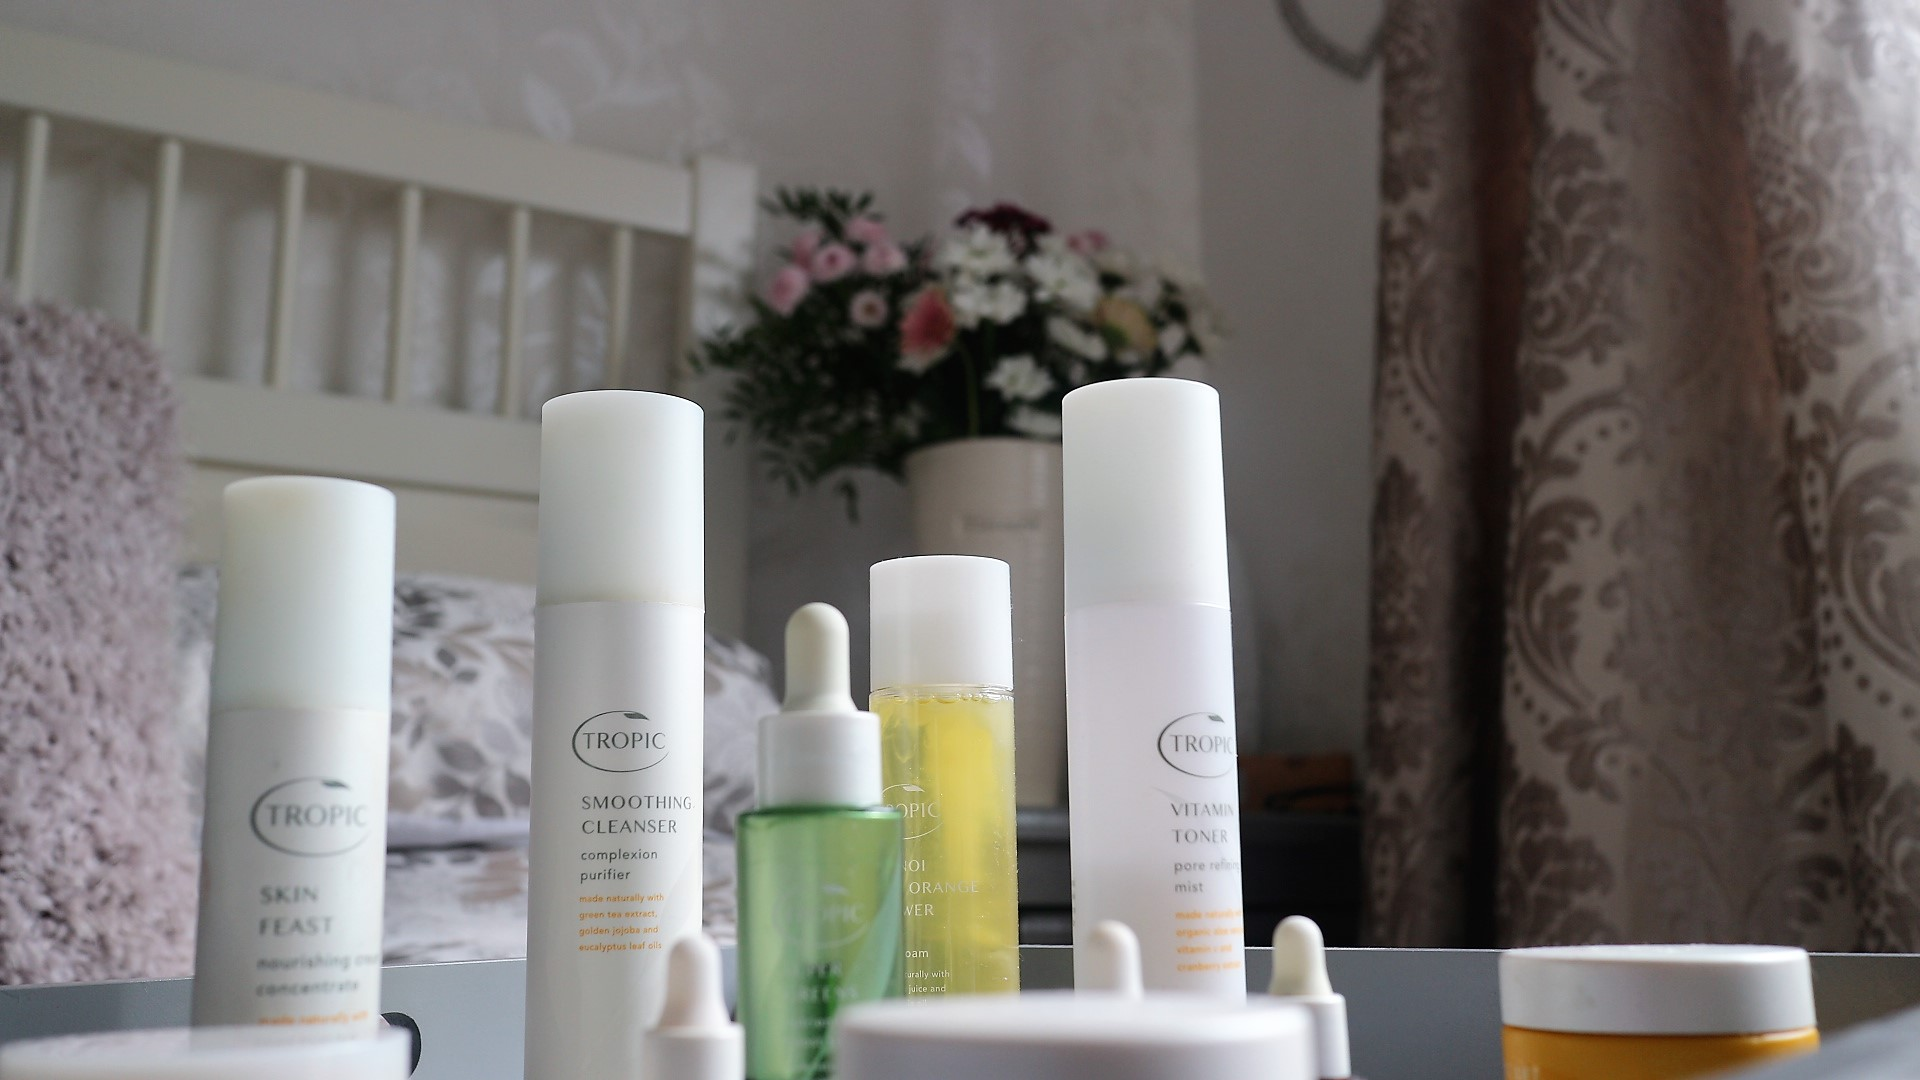 Tropic Skincare Products.